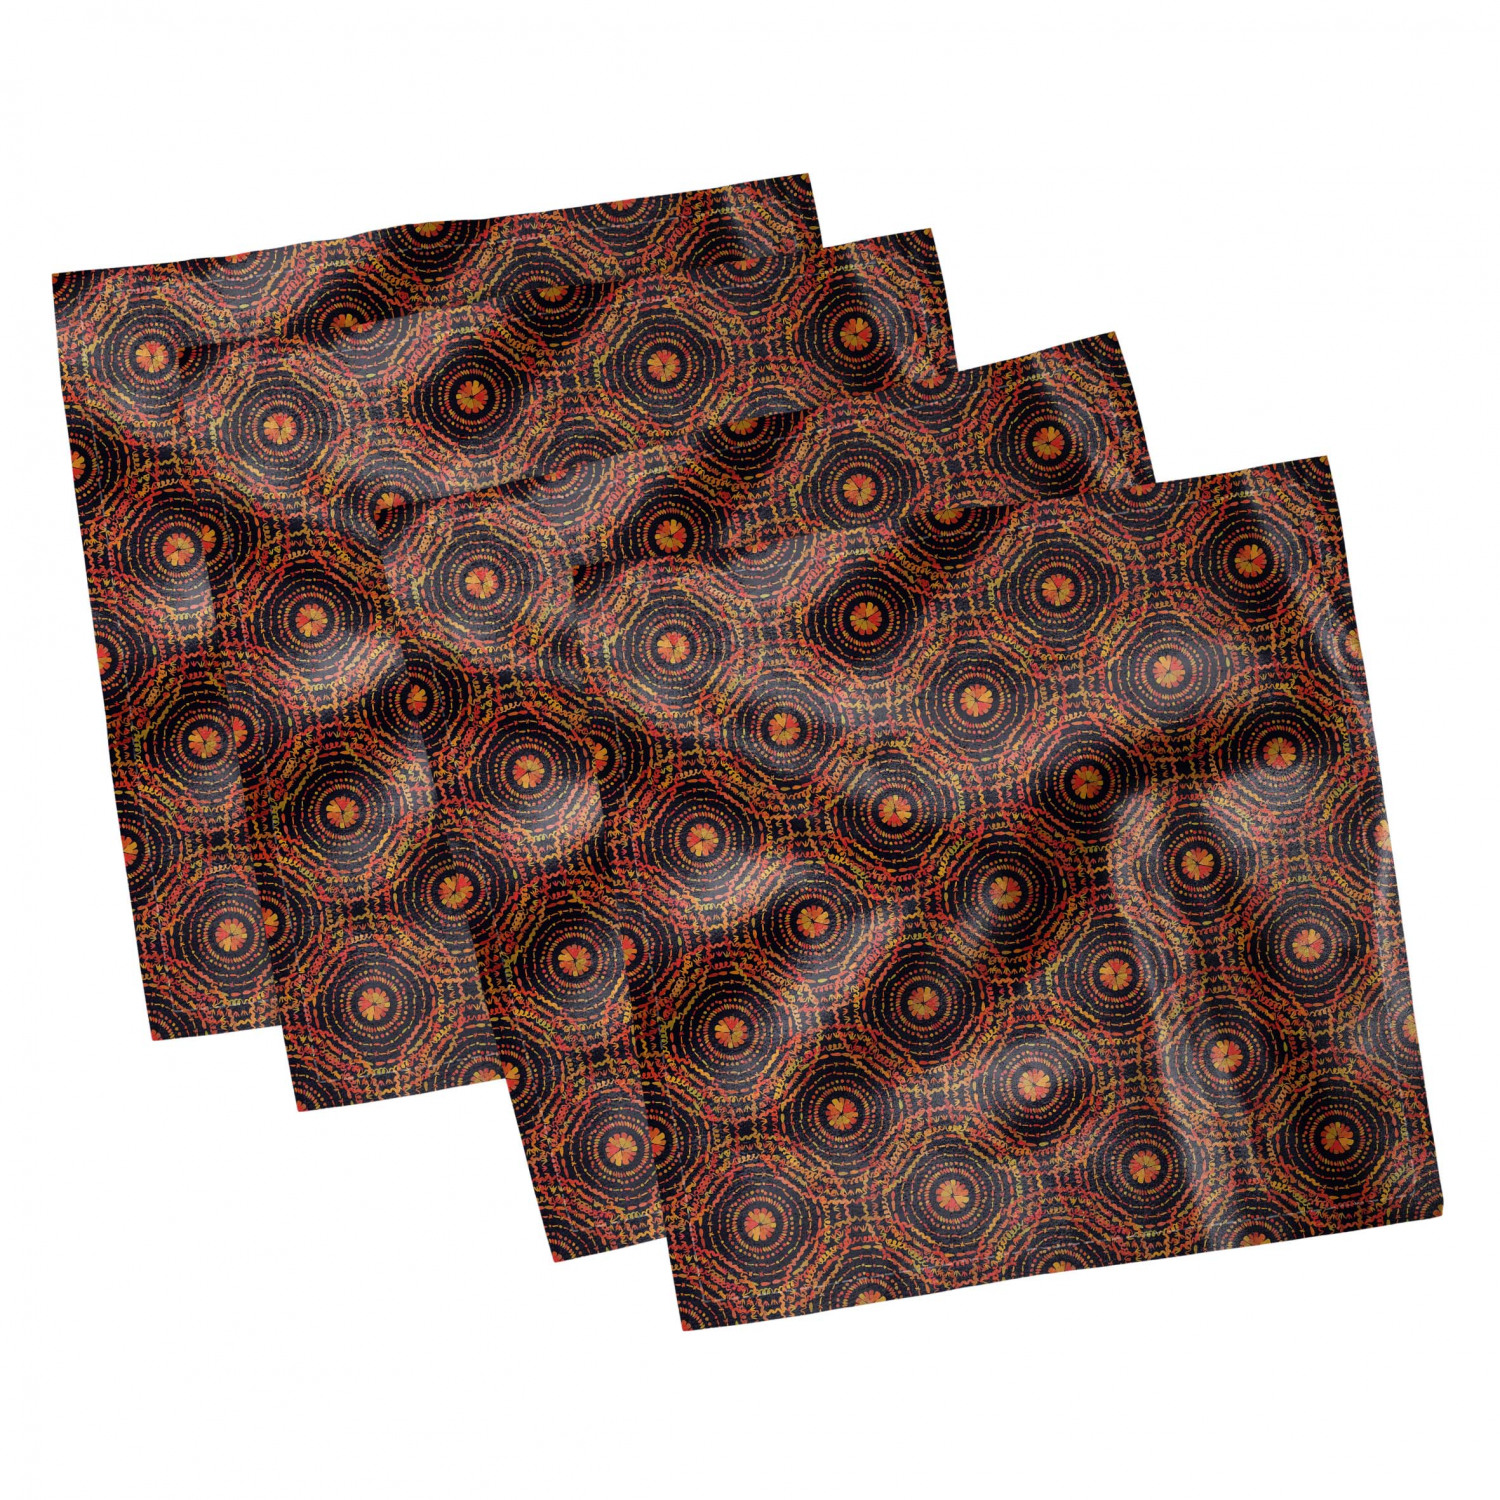 thumbnail 5 - Ambesonne Autumn Fall Decorative Satin Napkins Set of 4 Party Dinner Fabric